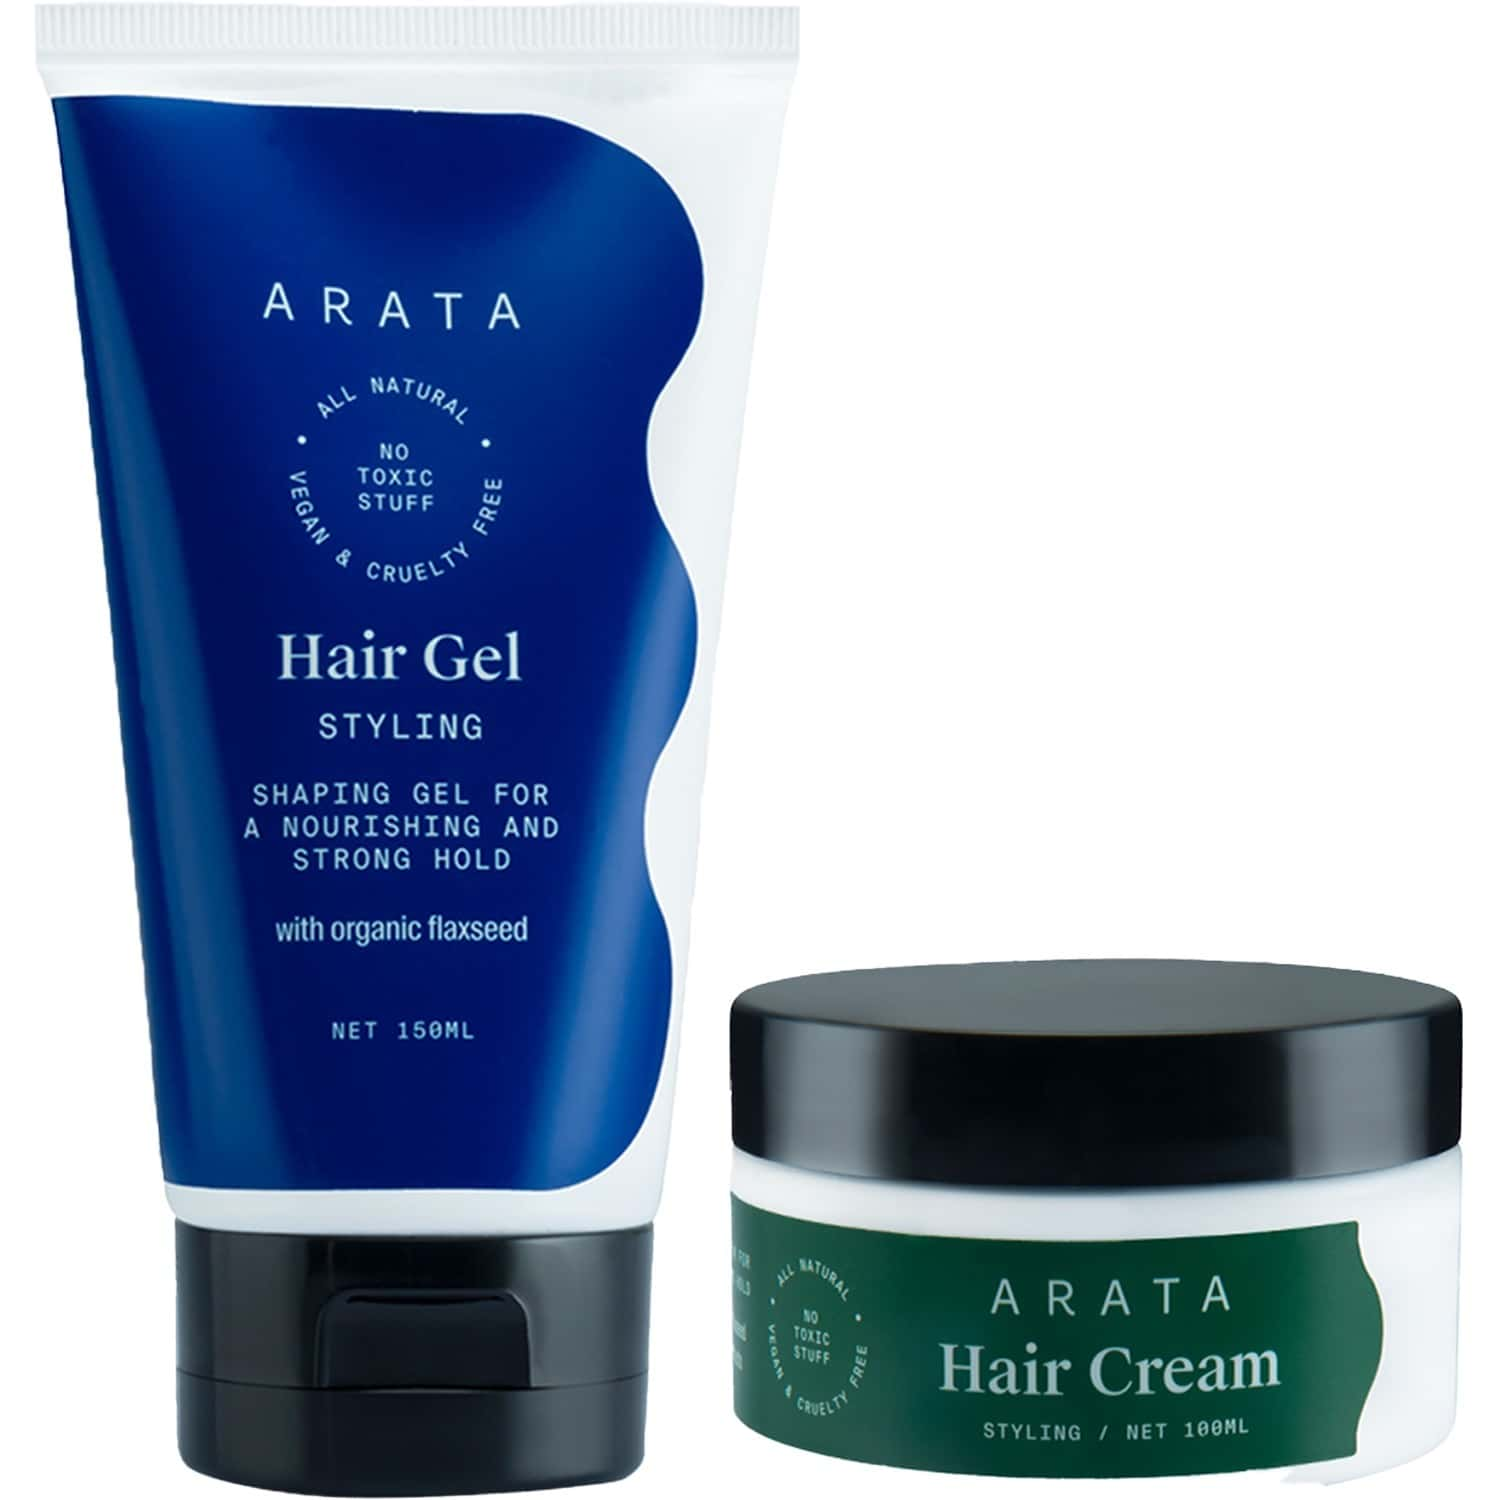 Arata Natural Hair Styling Combo With Hair Gel (150 Ml )& Hair Cream (100 Ml) For Women & Men || All Natural,vegan & Cruelty Free || For Nourishing ,styling & Strong Hold